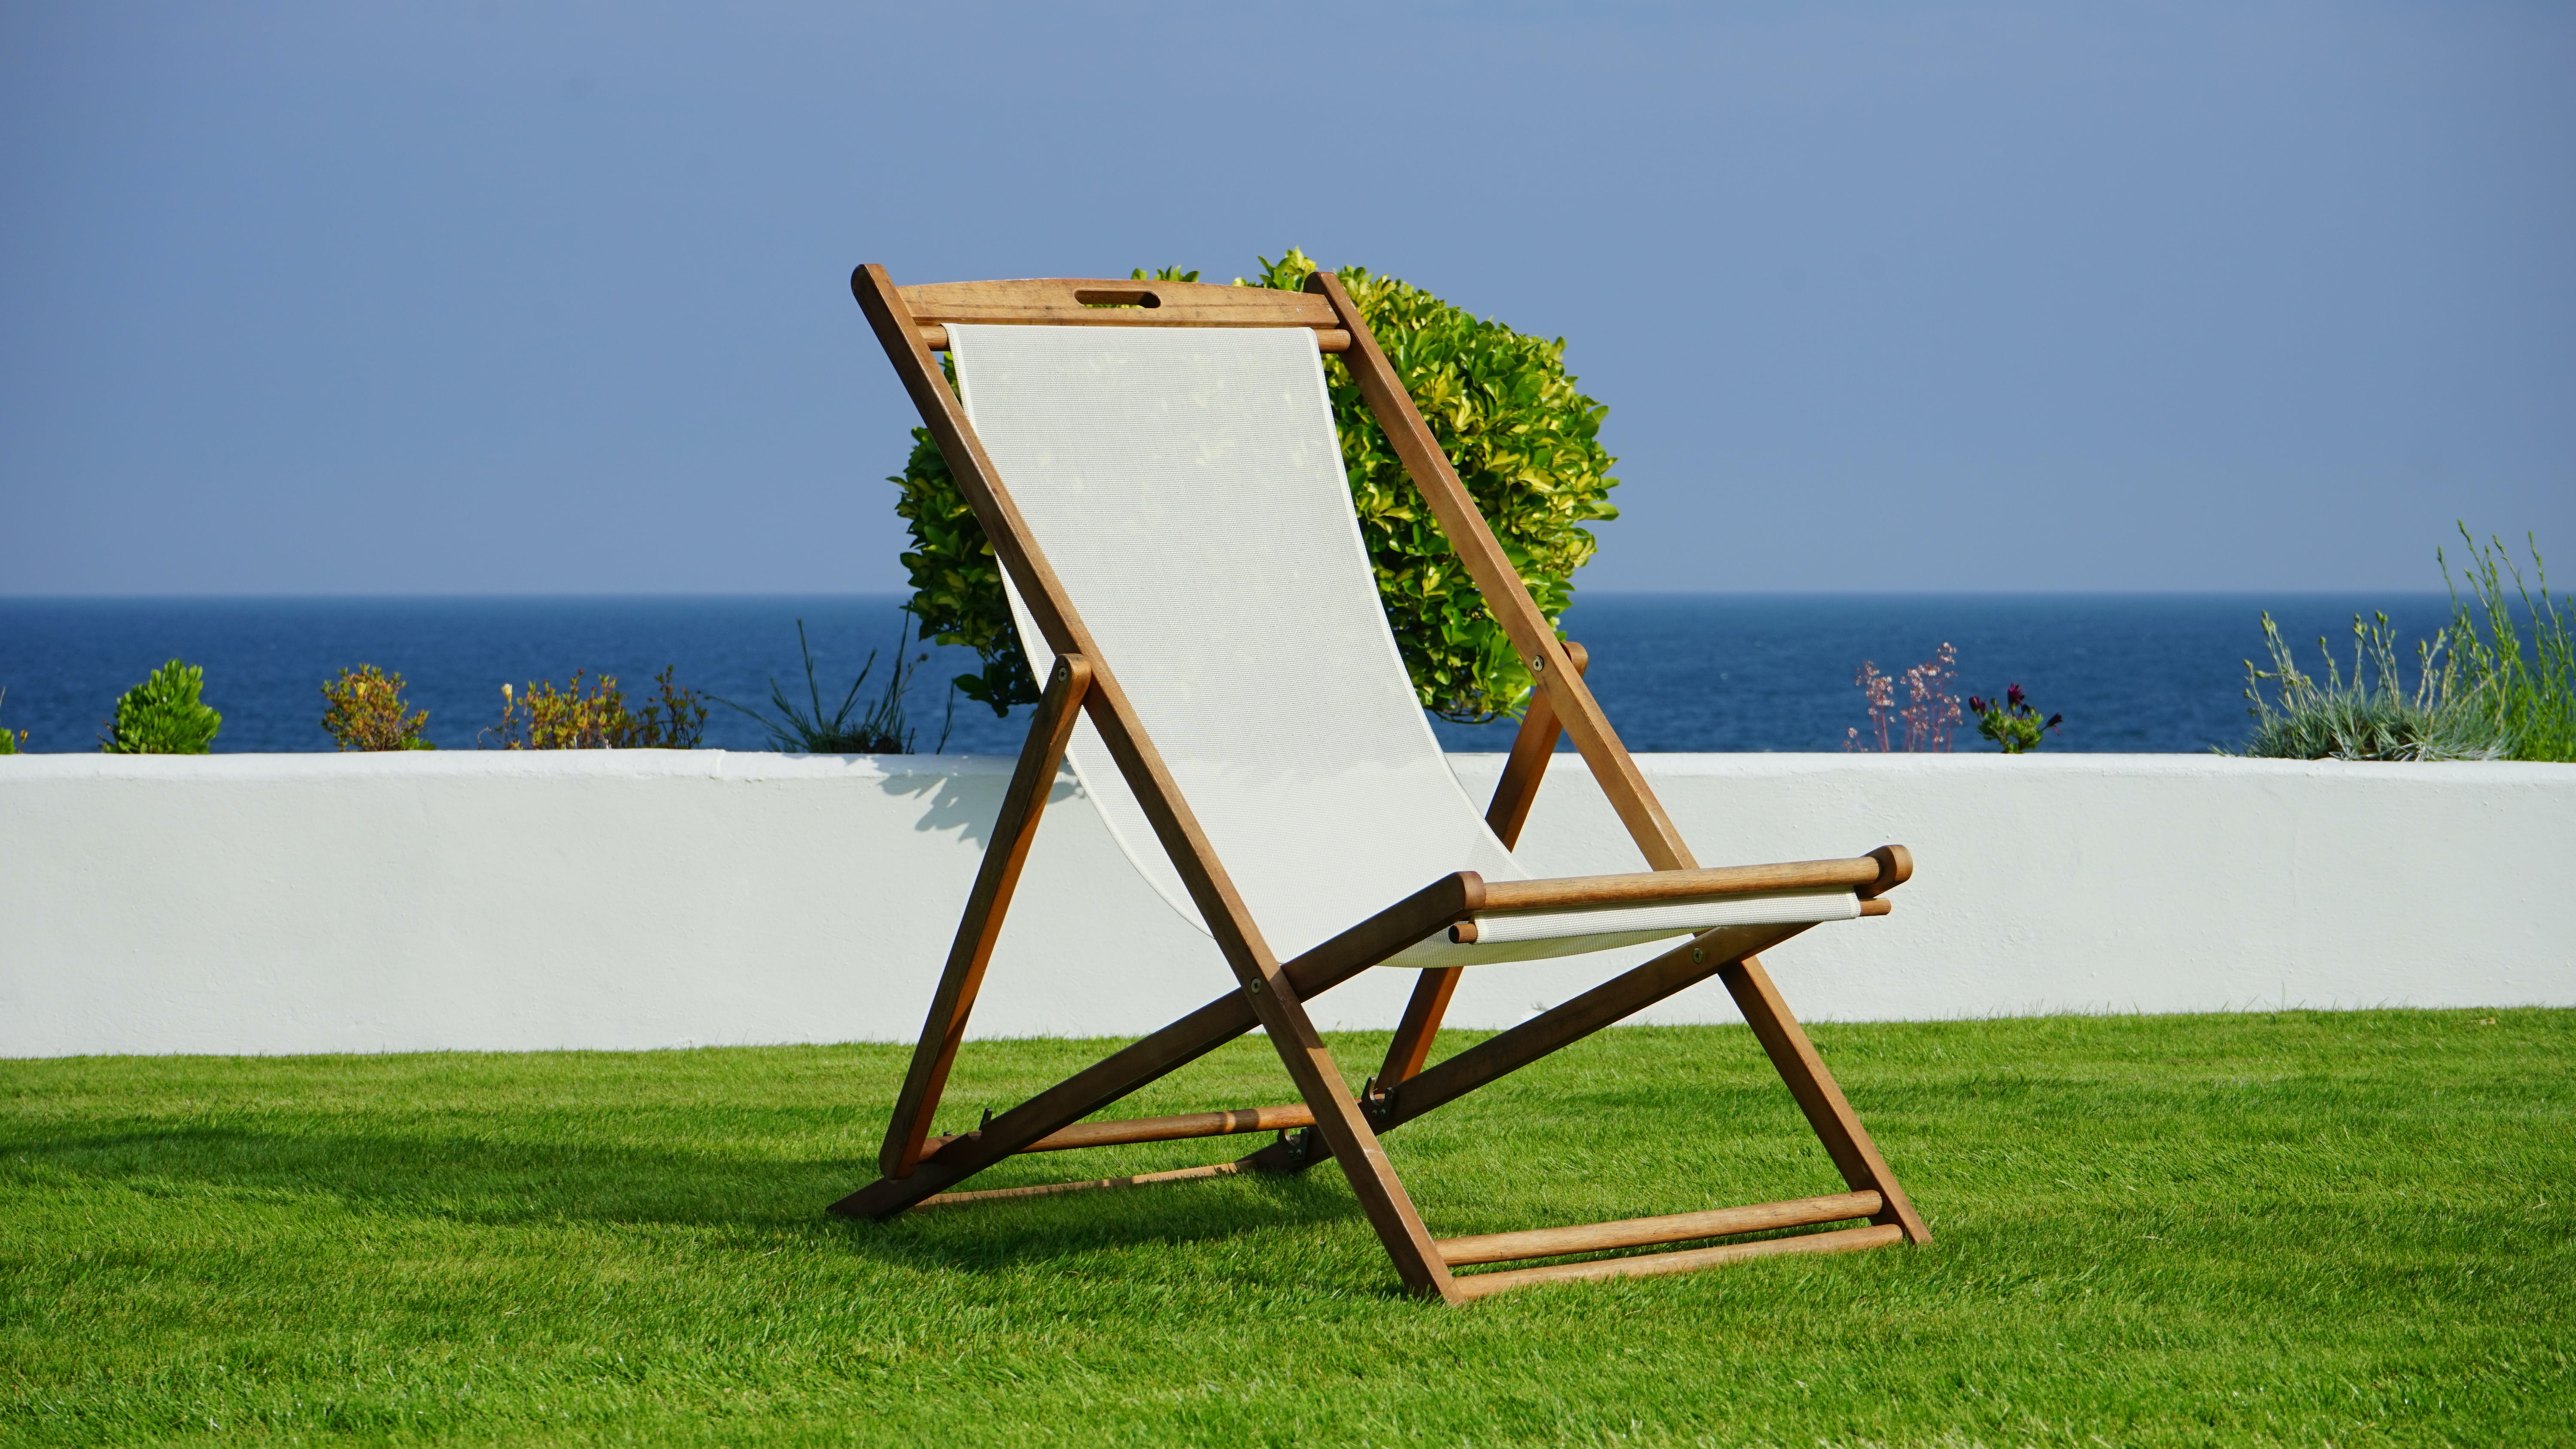 Brown and White Wooden Lounger